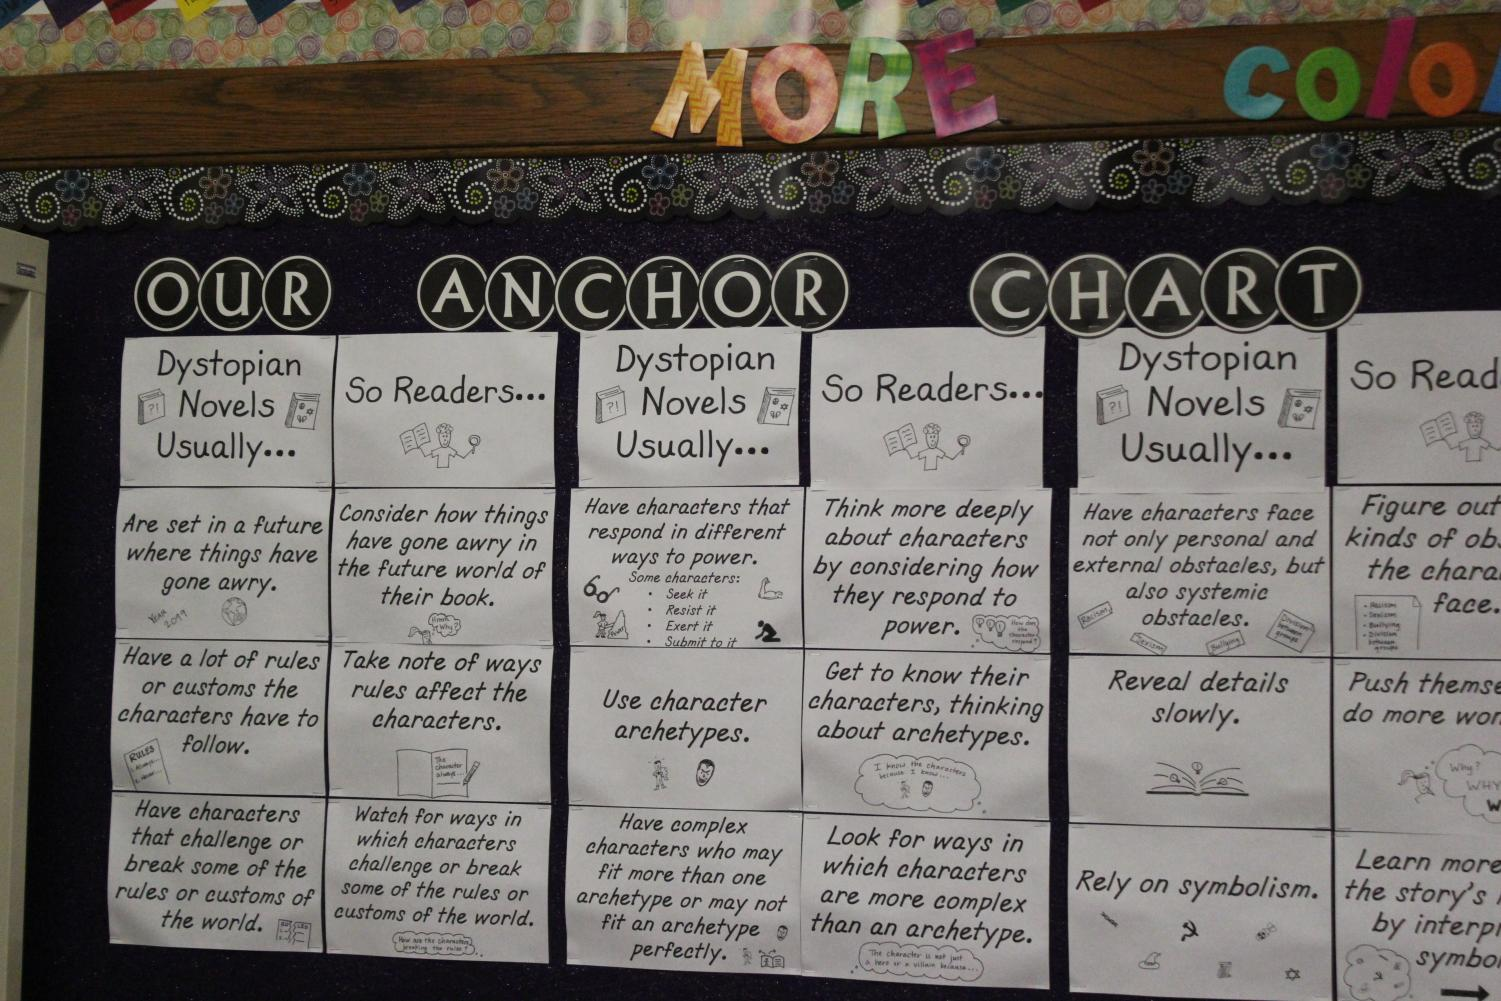 Anchors+are+used+to+help+readers+understand+their+stories+deeper.+Teachers+teach+their+students+these+in+order+for+them+to+think+deeper+into+their+stories+and+understand+characters%2C+changes%2C+and+settings+better.+